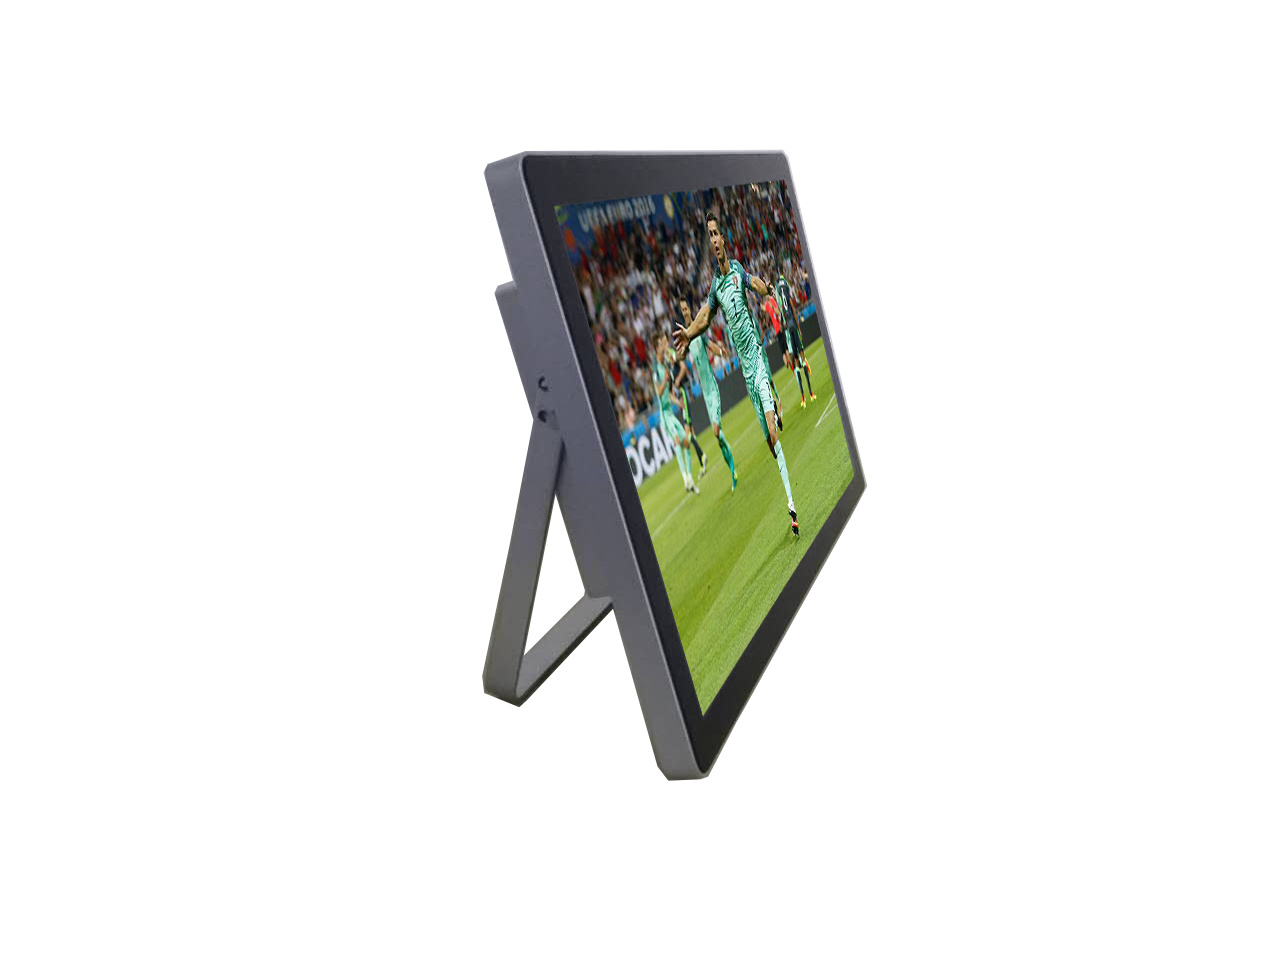 17.5-Inch IP65 Water-Resistant/Waterproof TV Make Perfect Solution for Water Proof Application